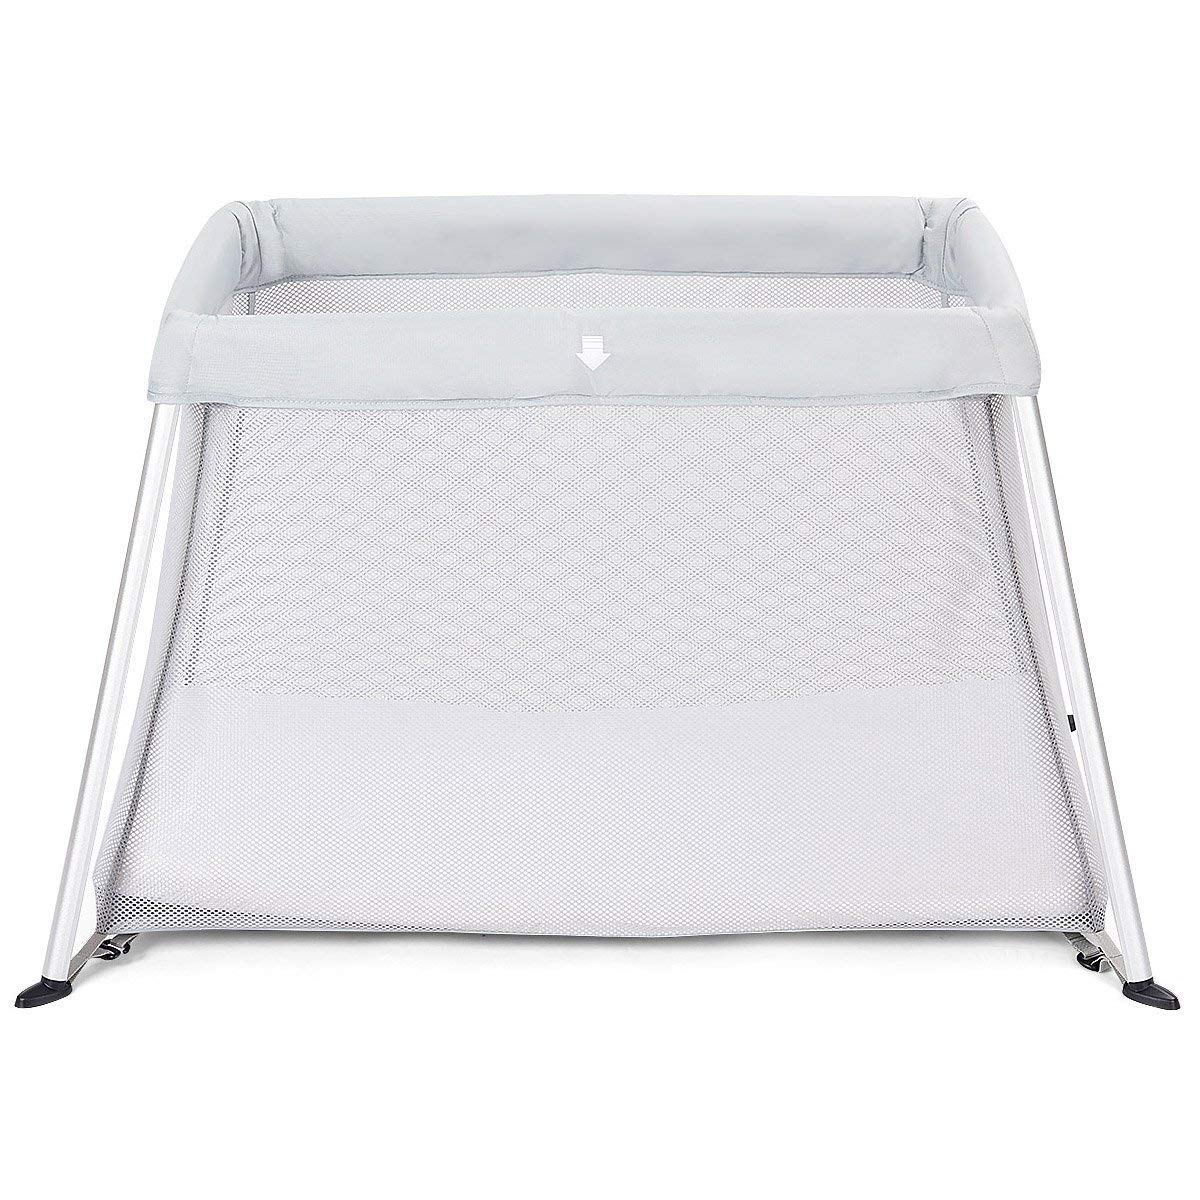 Costzon Baby Playpen, Ultra-Light Aluminum Portable Travel Crib with Comfy Mattress & Oxford Carry Bag, Gray